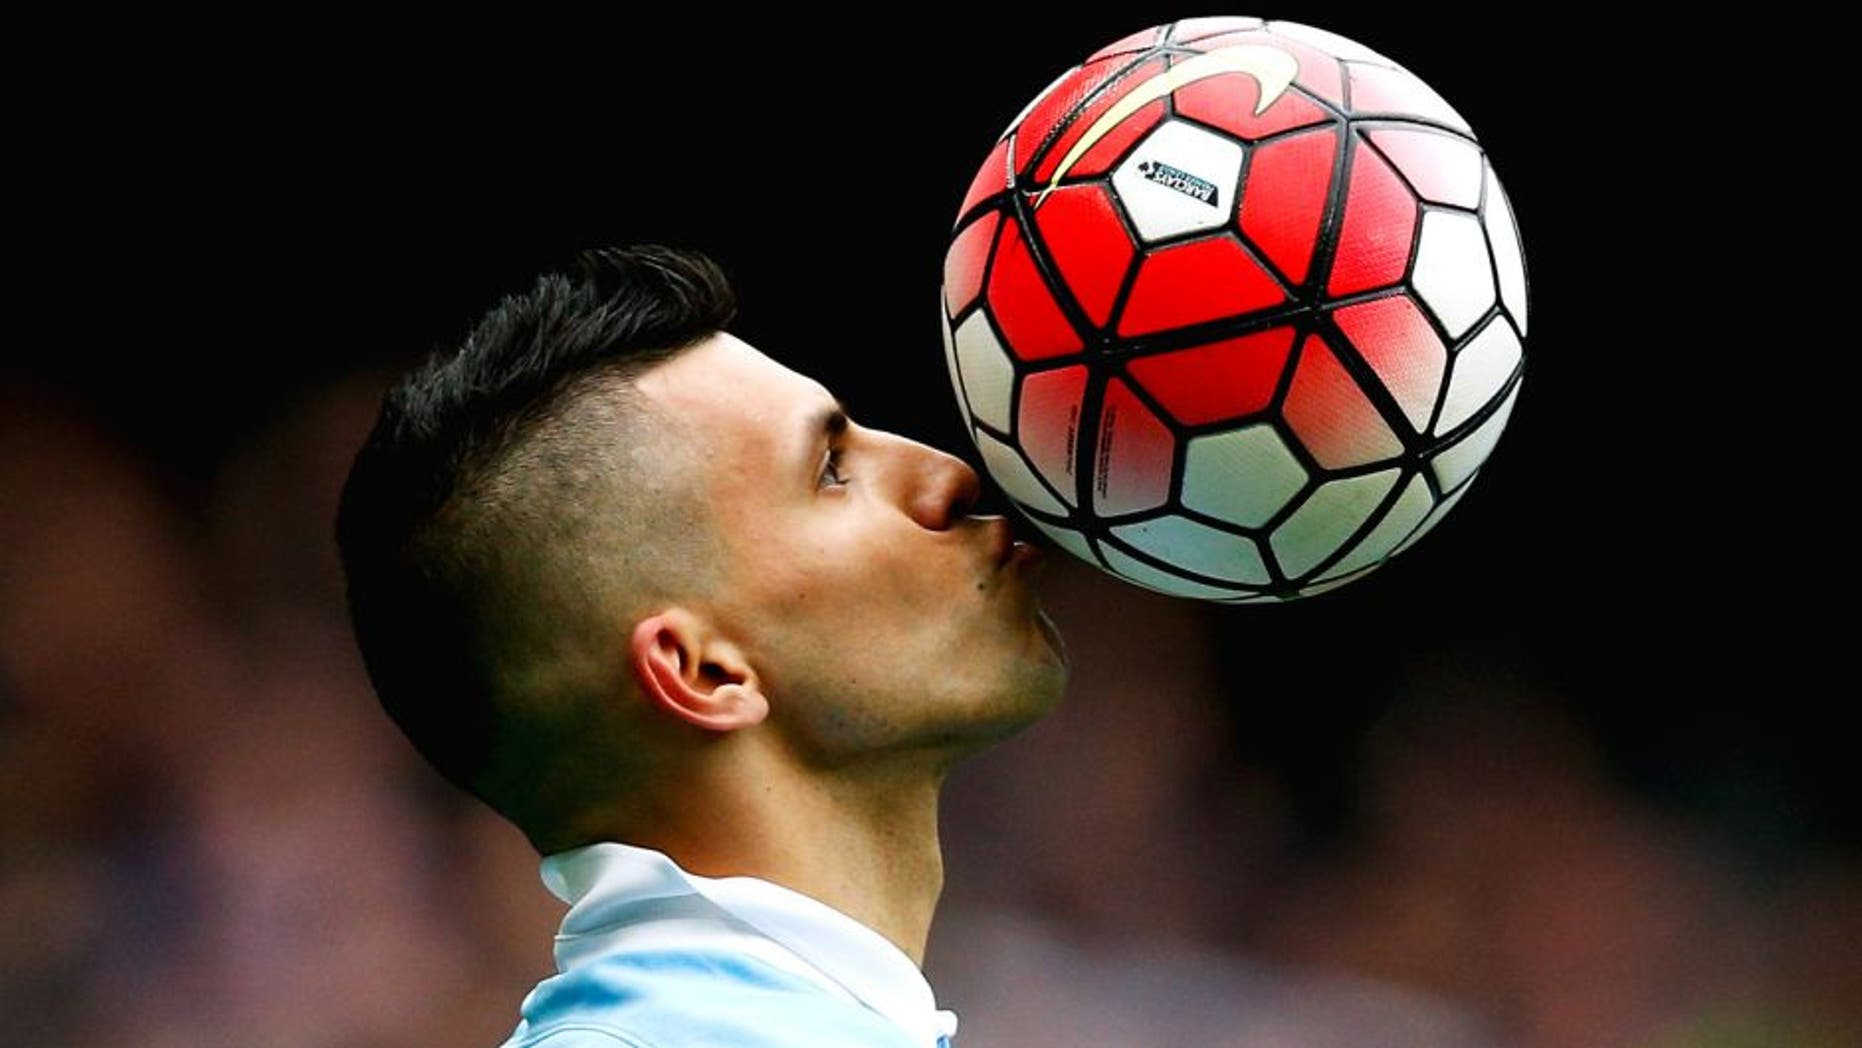 MANCHESTER, ENGLAND - OCTOBER 03: Sergio Aguero of Manchester City kisses the ball to celebrate a goal and his hat-trick during the Barclays Premier League match between Manchester City and Newcastle United at Etihad Stadium on October 3, 2015 in Manchester, United Kingdom. (Photo by Dean Mouhtaropoulos/Getty Images)